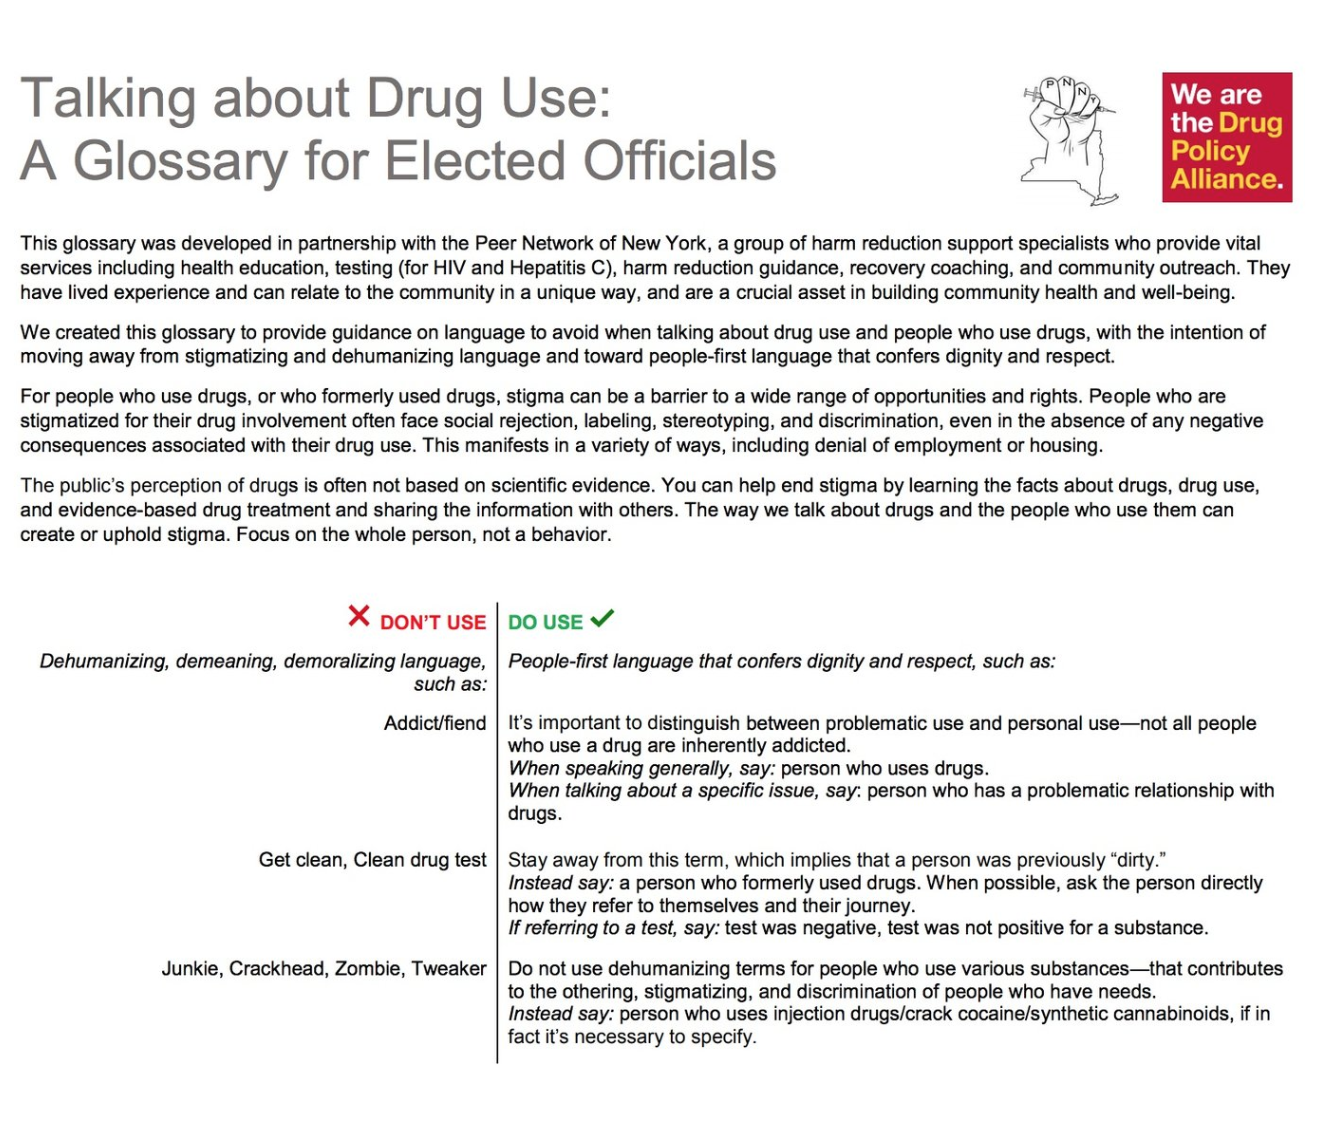 Anti-stigma glossary - In collaboration with the Peer Network of New York, Drug Policy Alliance has produced an invaluable glossary explaining how we are working to reduce stigma through language.